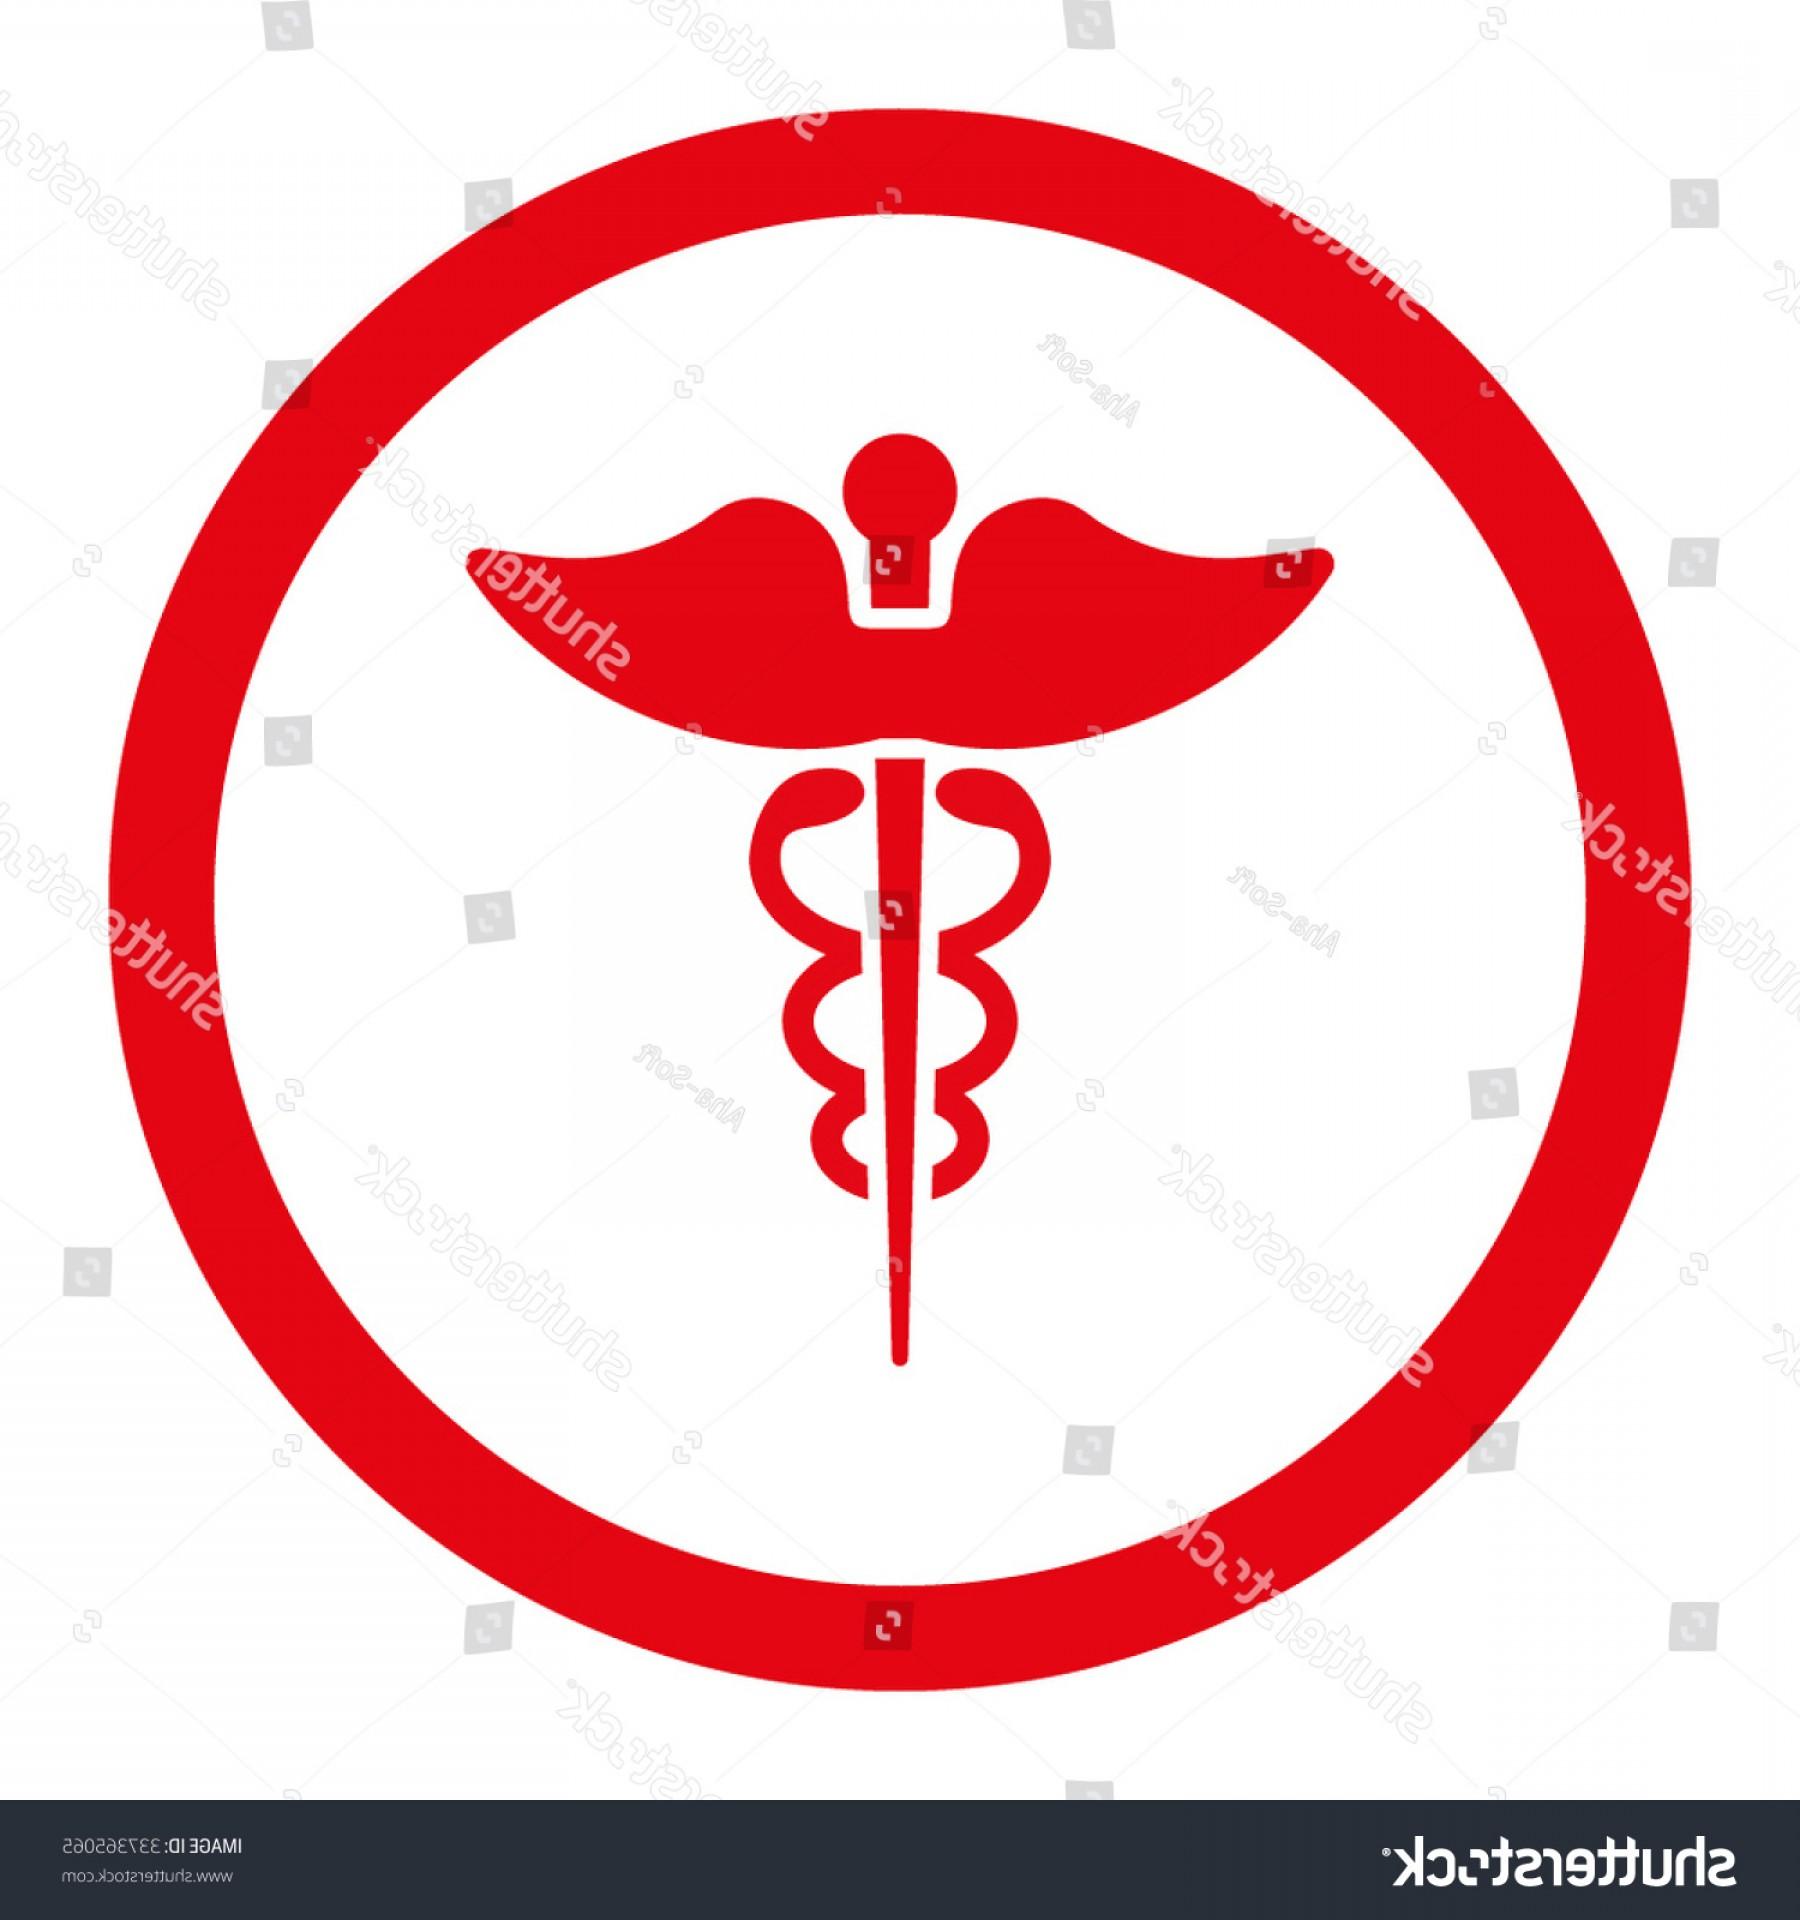 With Red Caduceus Vector: Caduceus Vector Icon Style Flat Rounded